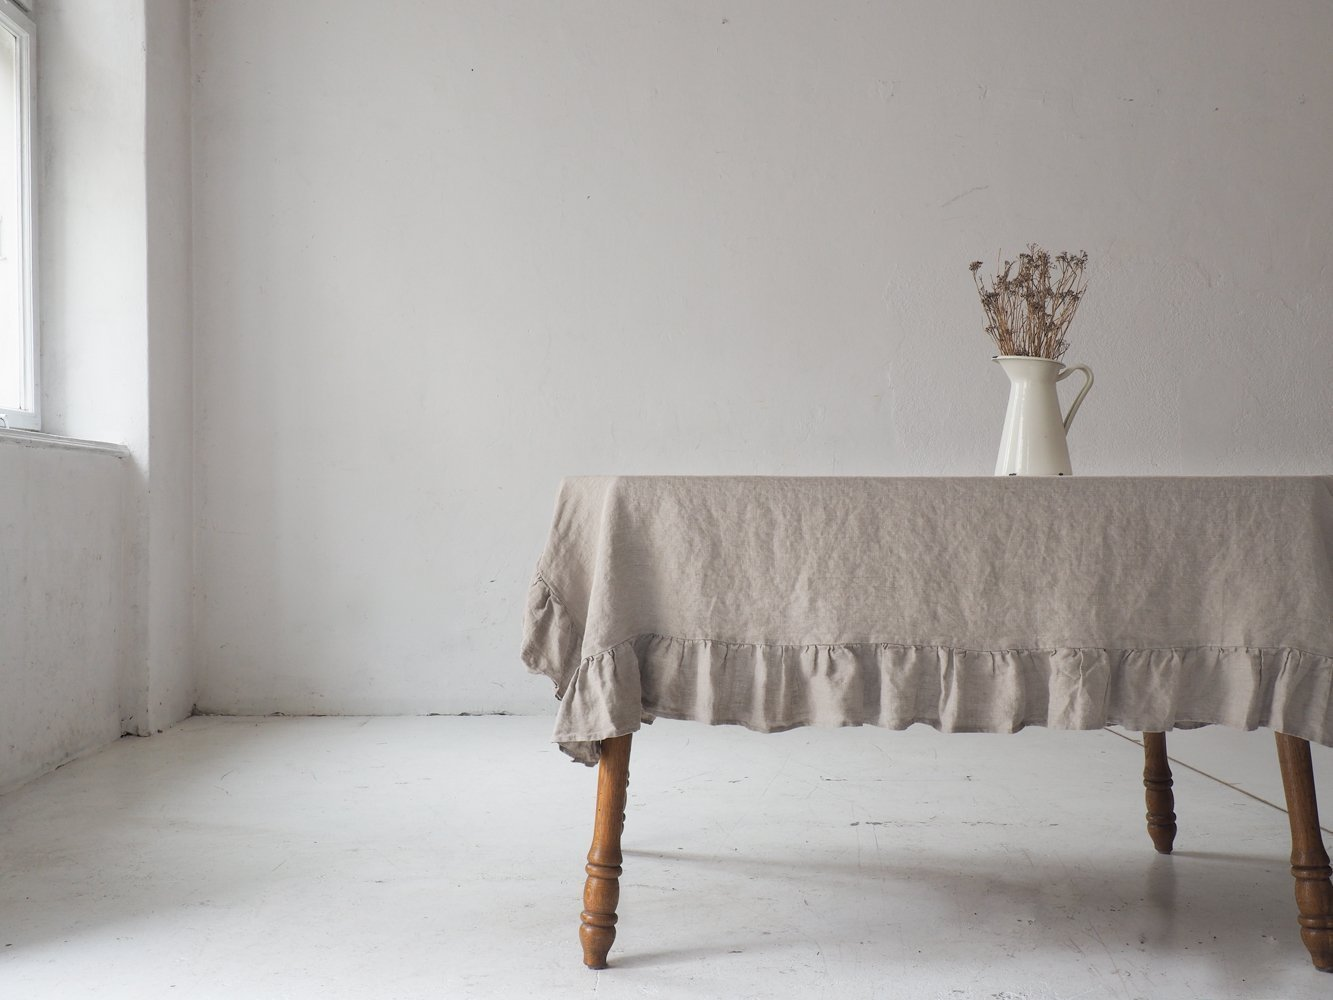 Linen Ruffled tablecloth, natural linen tablecloth, rustic tablecloth, custom size